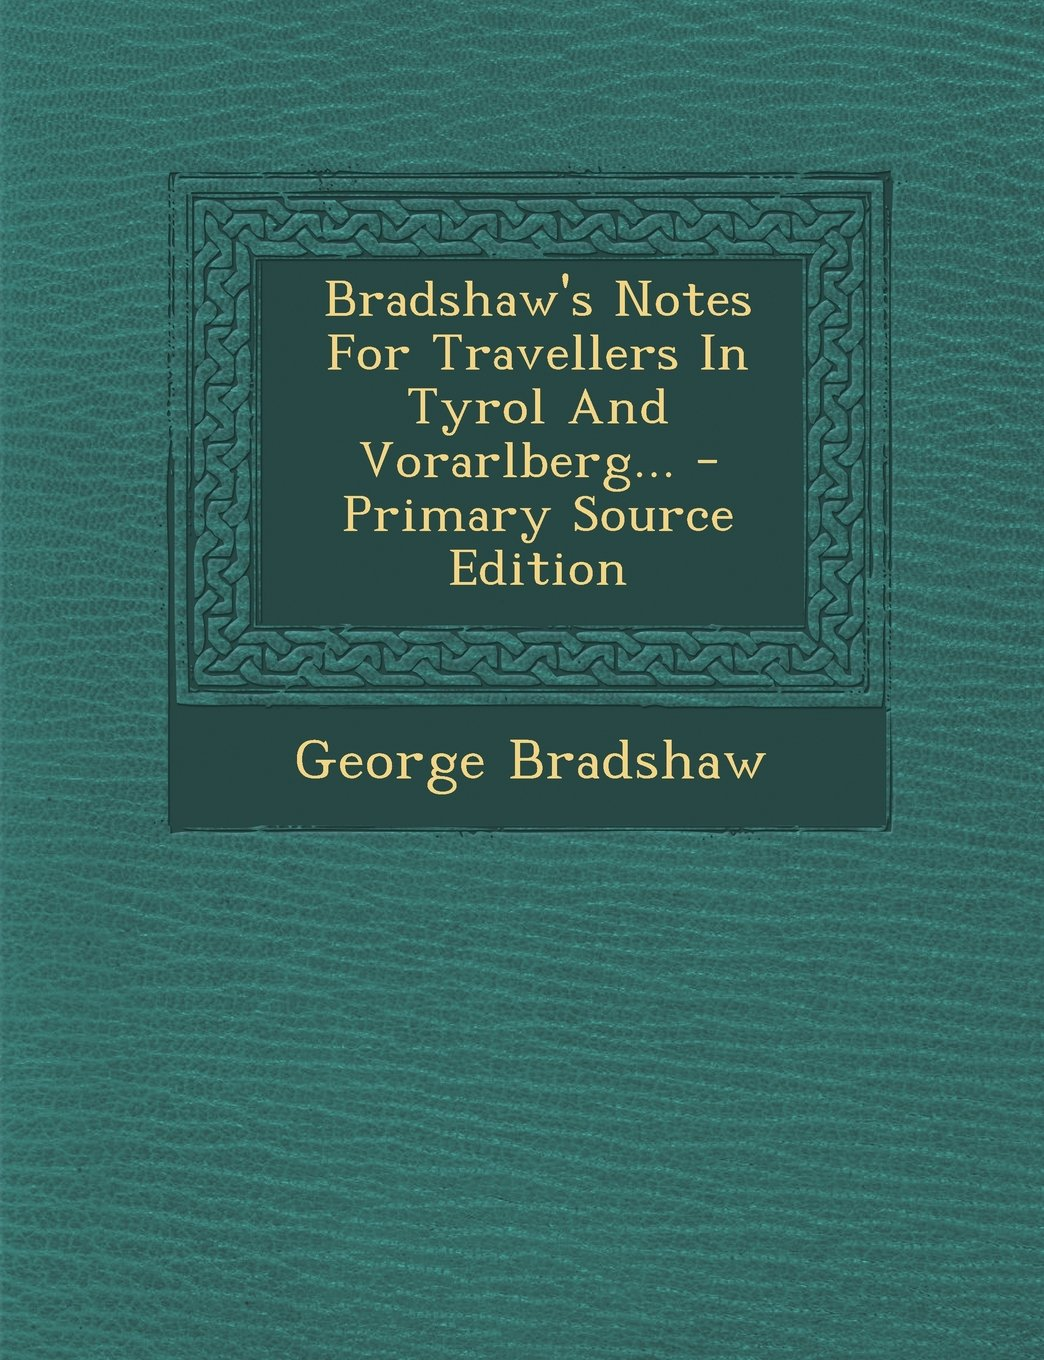 Bradshaw's Notes For Travellers In Tyrol And Vorarlberg... - Primary Source Edition PDF